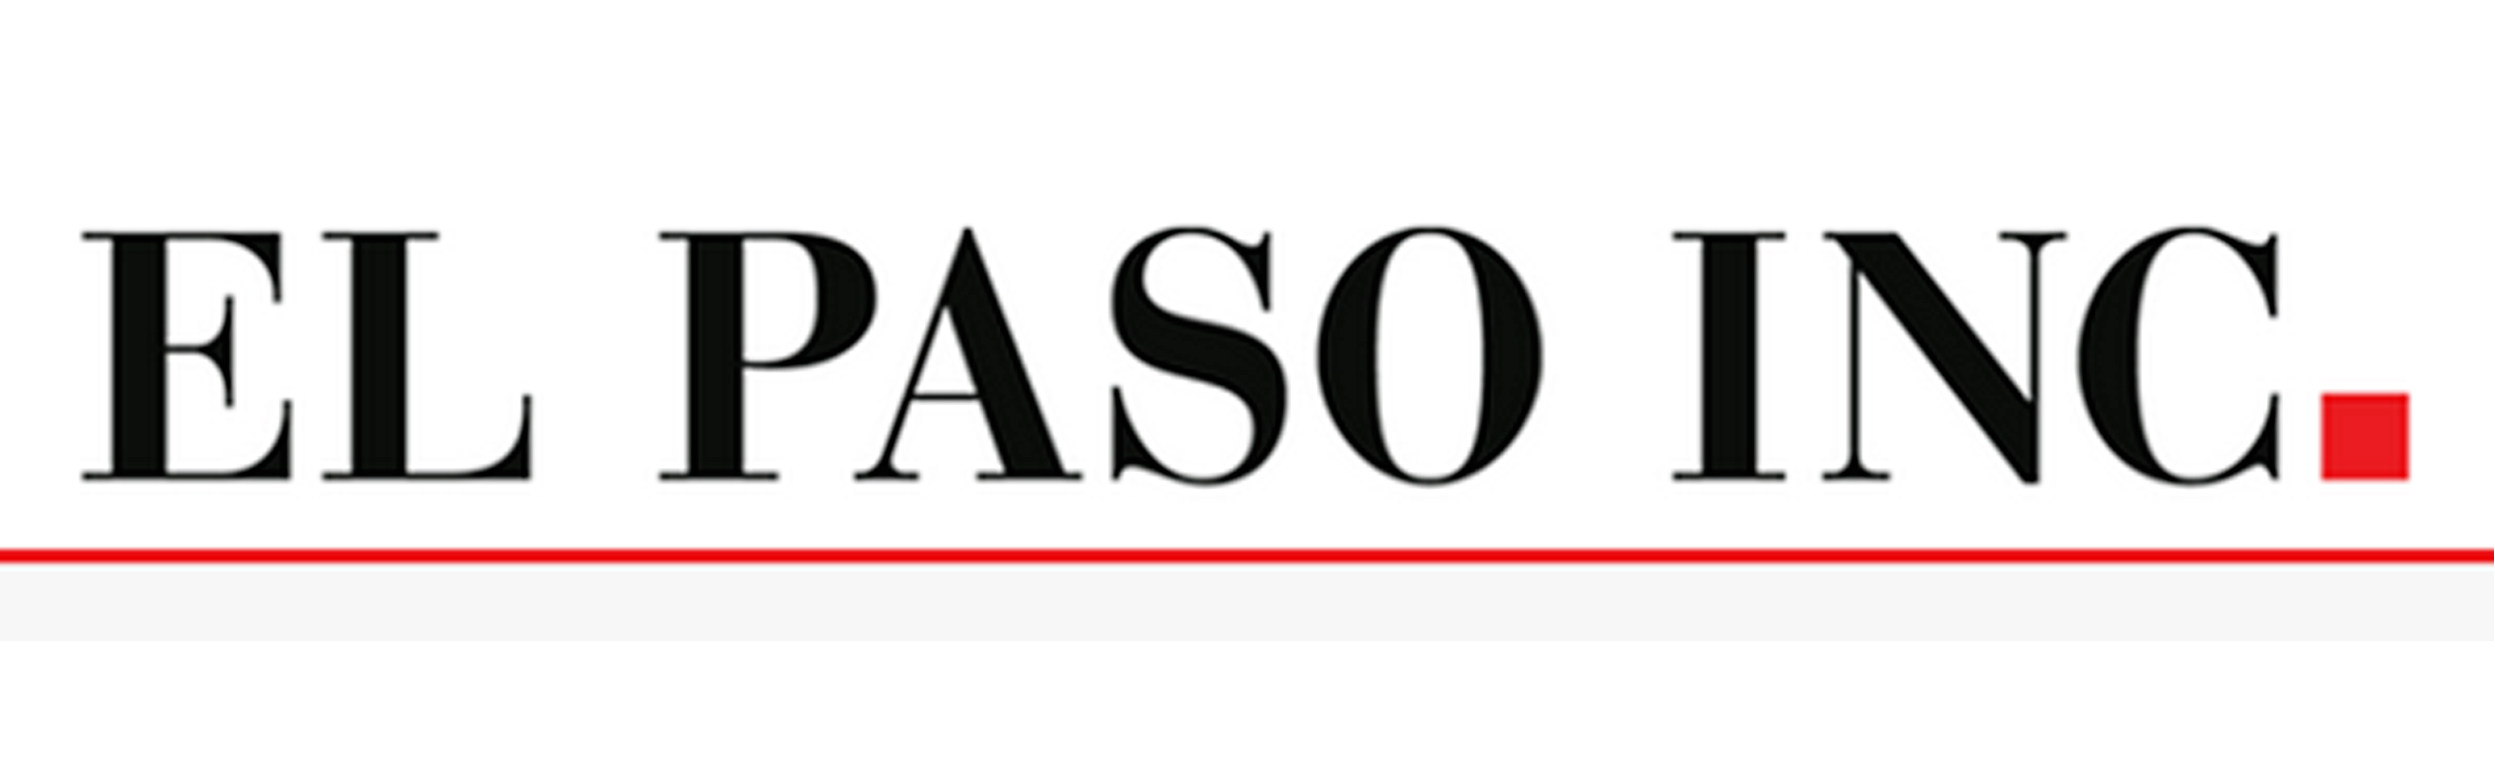 Elpasoinc October 2017 Banner